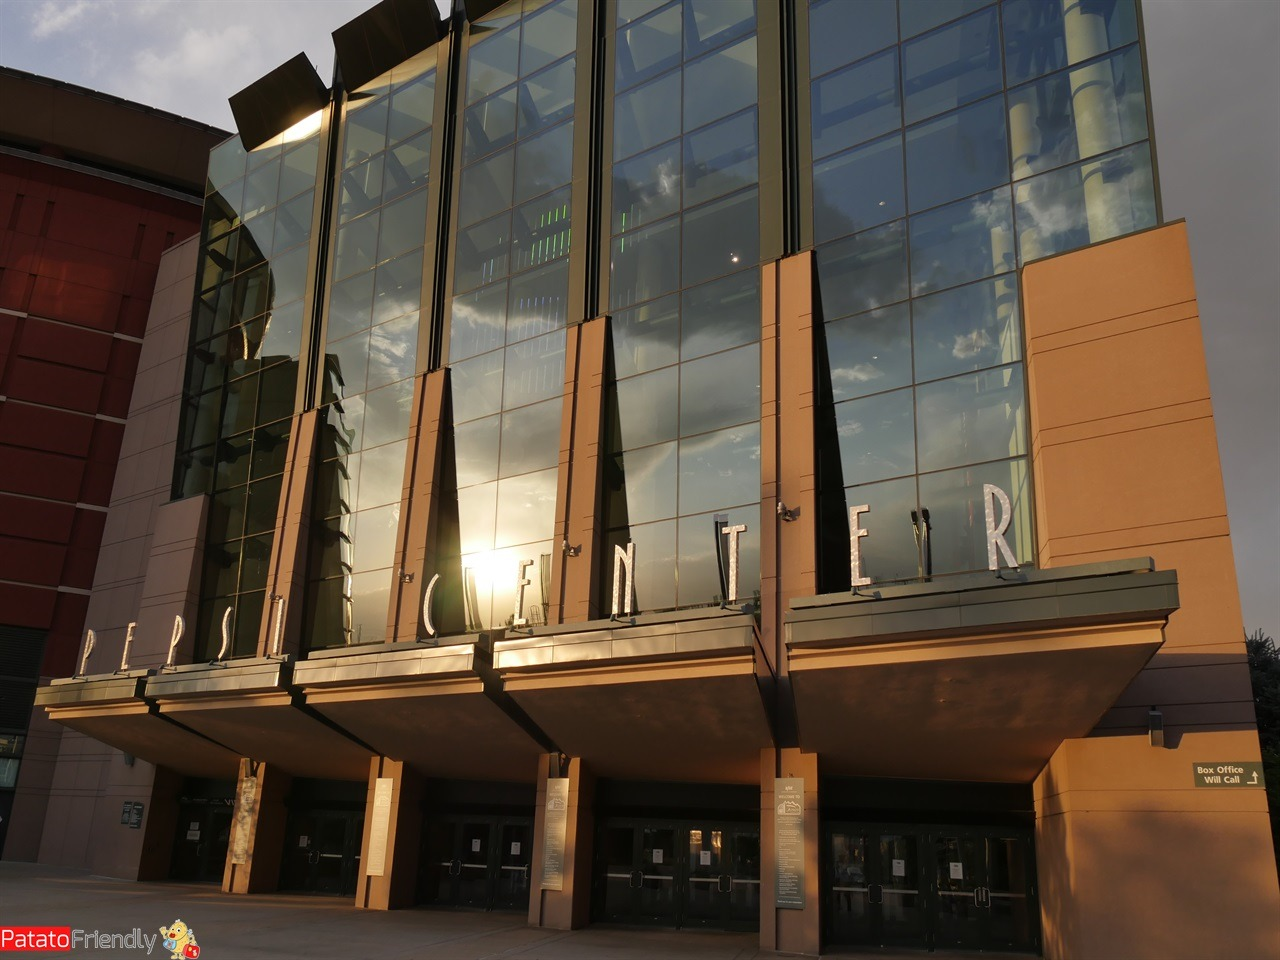 [cml_media_alt id='11510']Denver - Il Pepsi Center casa dei Denver Nuggets[/cml_media_alt]